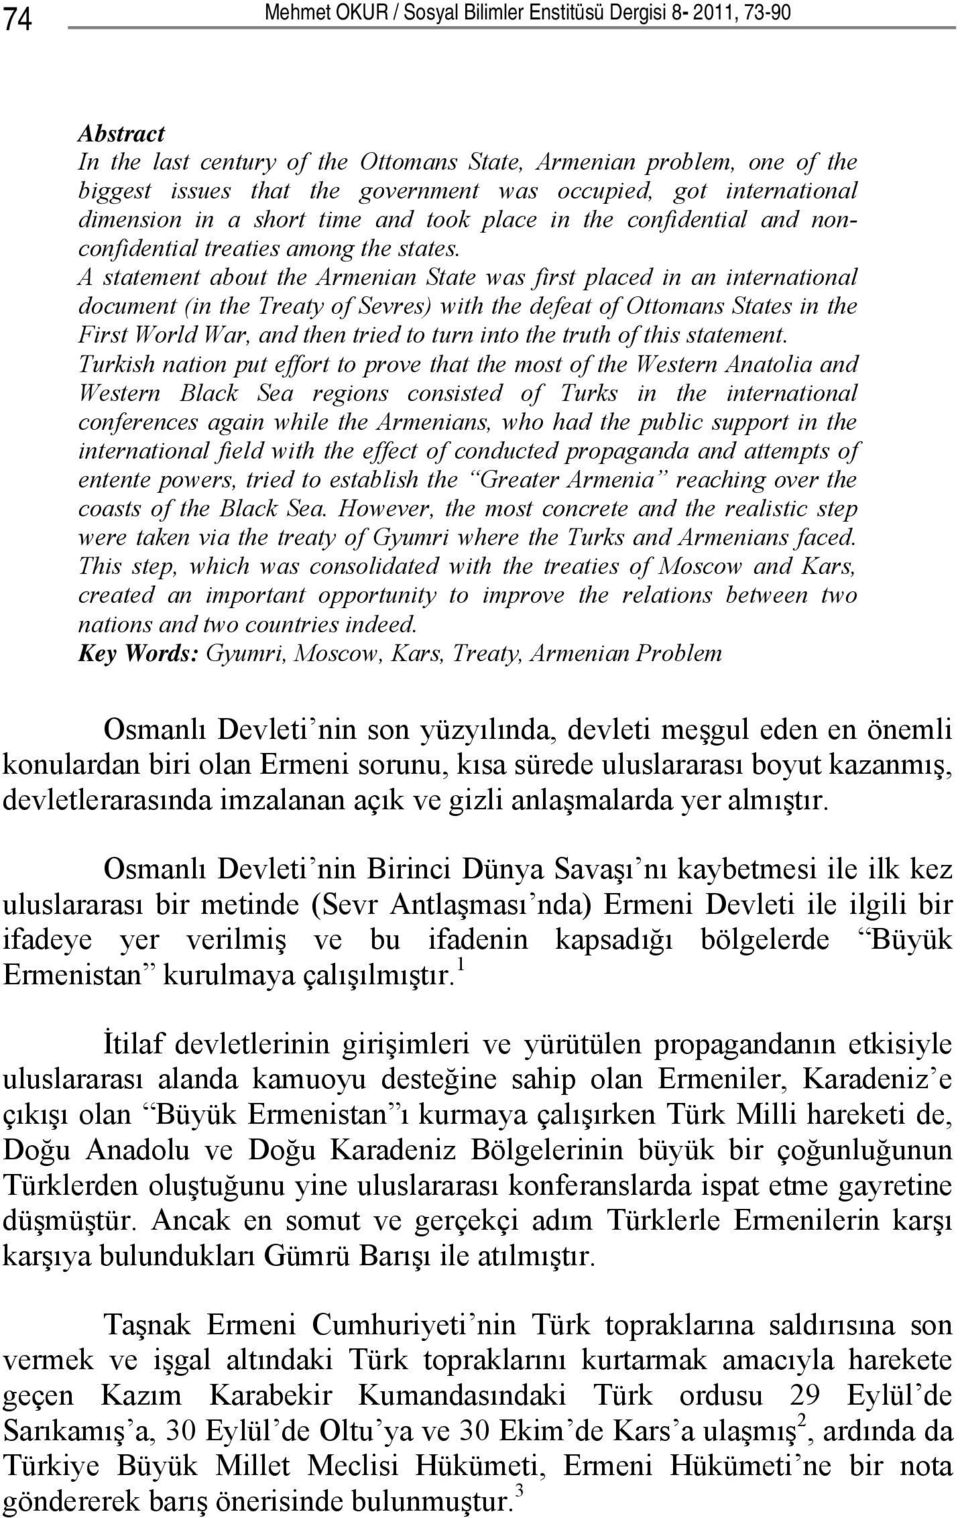 A statement about the Armenian State was first placed in an international document (in the Treaty of Sevres) with the defeat of Ottomans States in the First World War, and then tried to turn into the